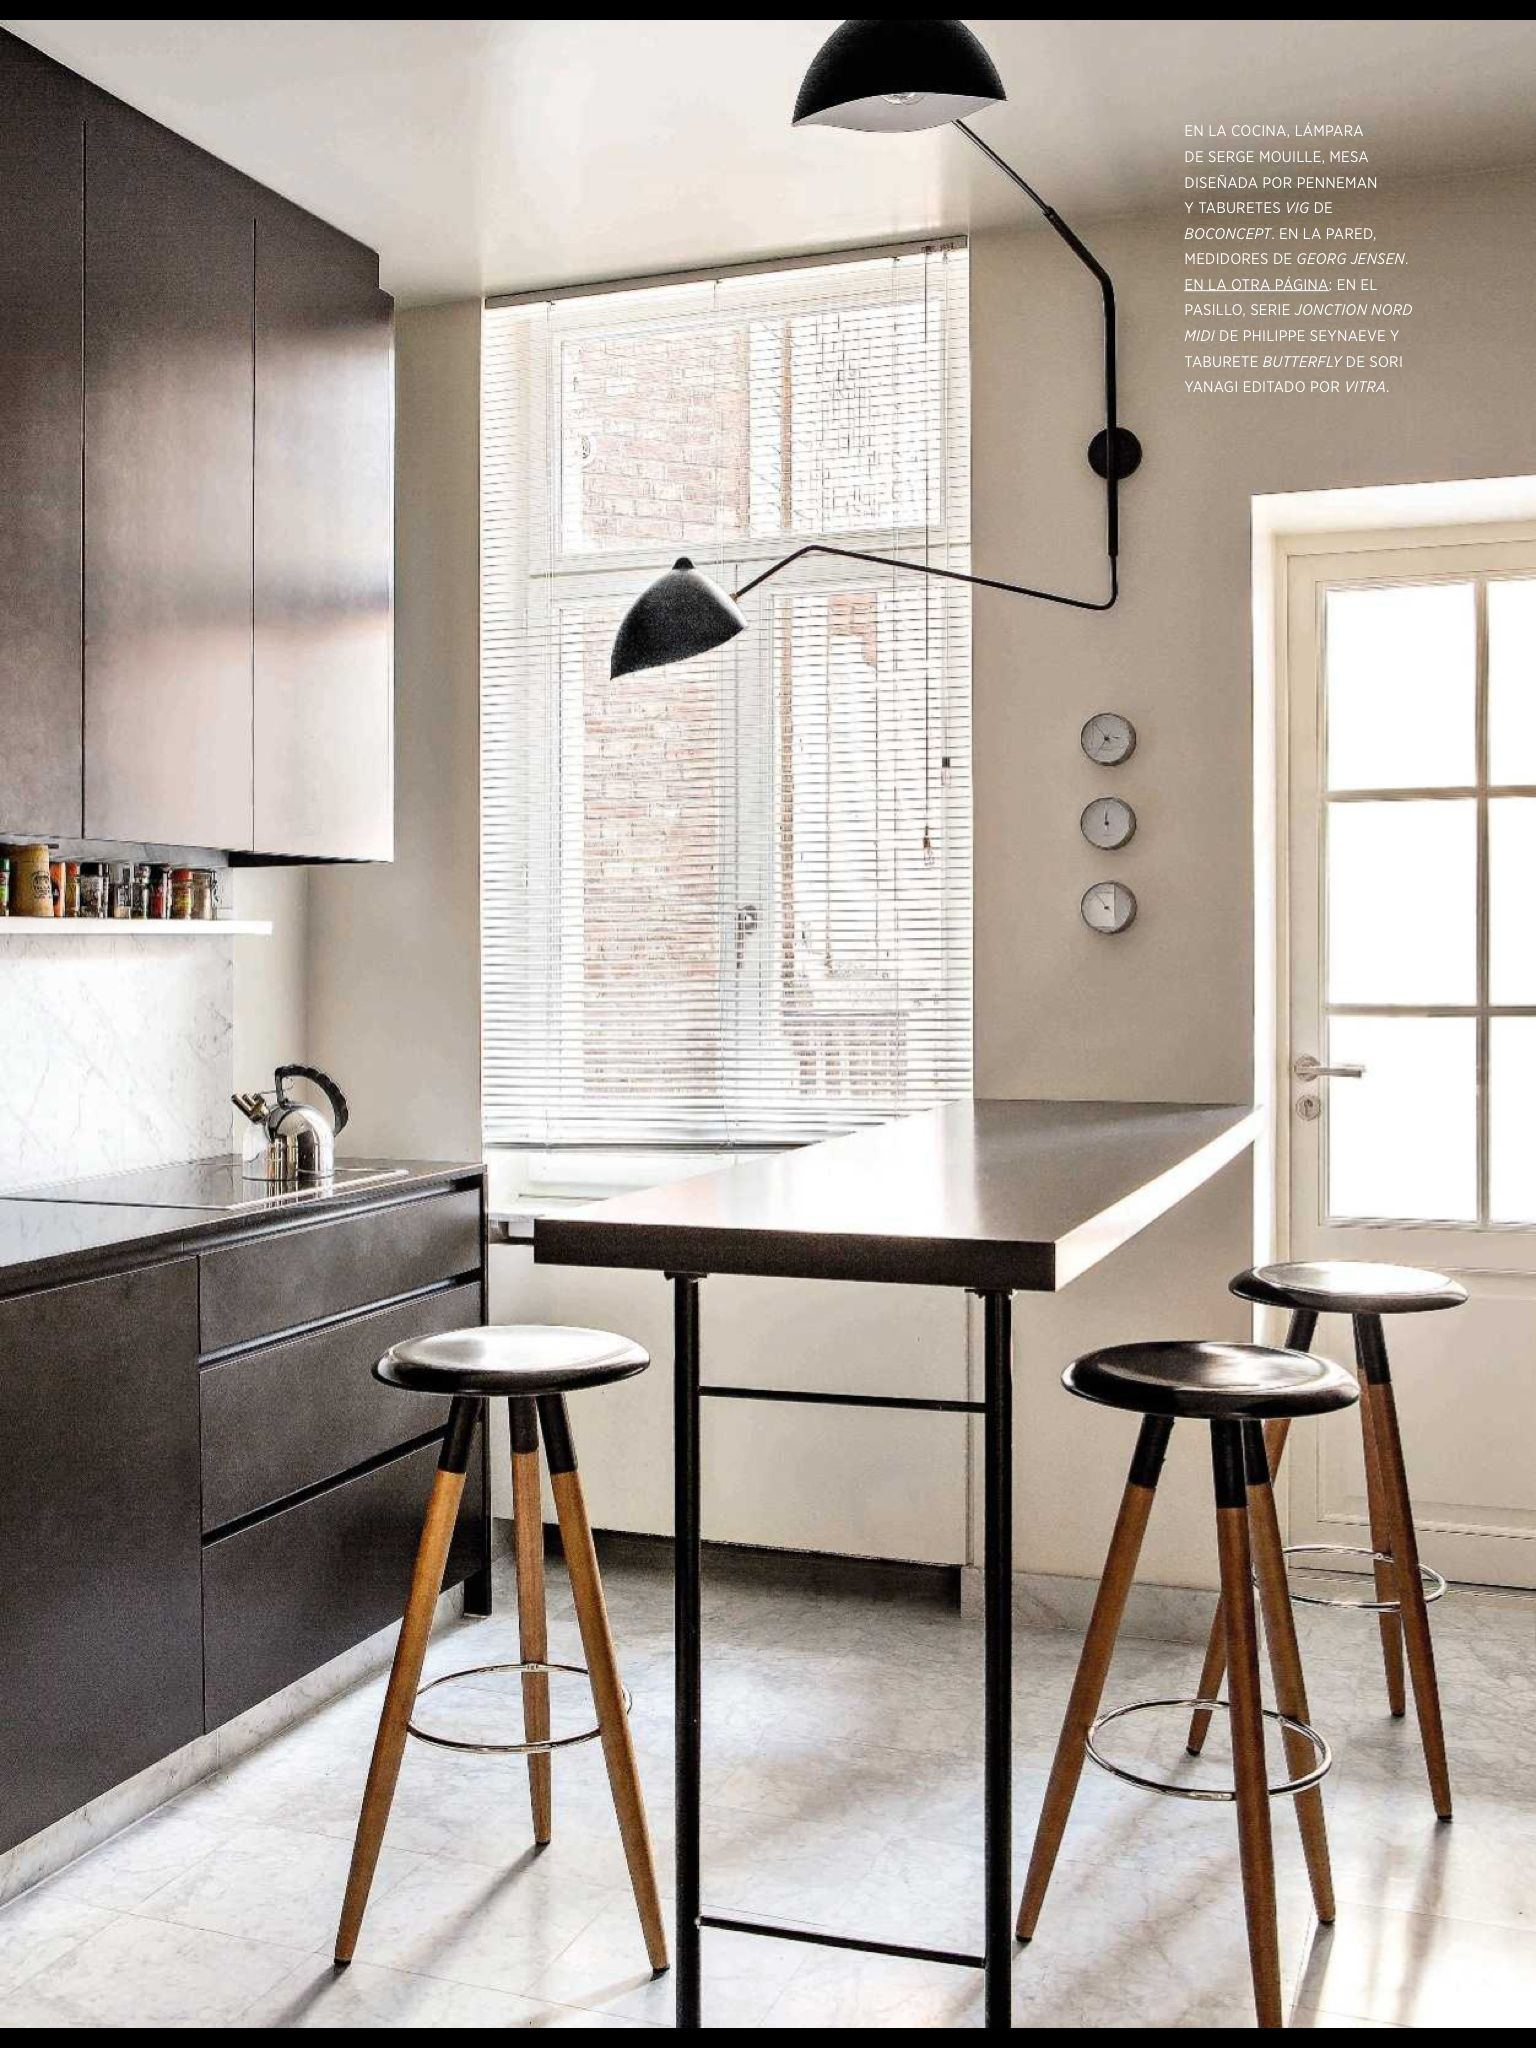 industrial kitchen lights cabinet organizer ideas 10 beautiful rooms bar and stools